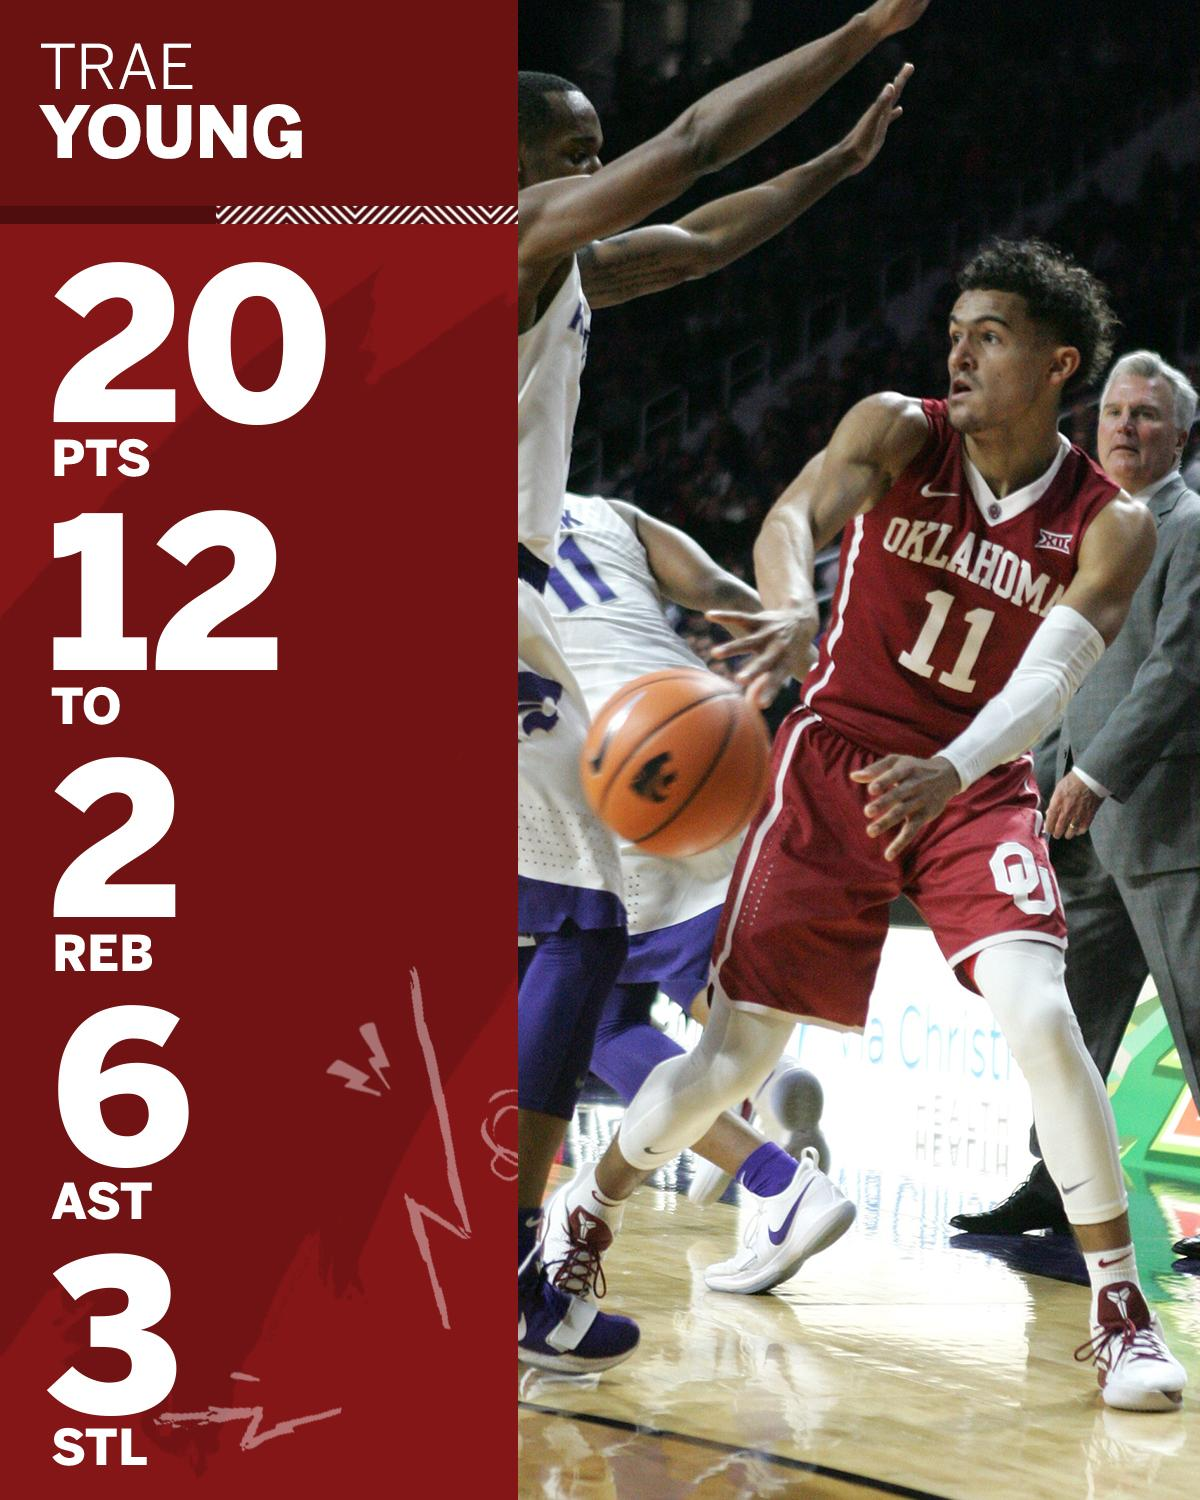 Trae Young's 12 turnovers vs. Kansas State are the most by a major conference player in a game since 1999. https://t.co/C9oLCOfhow